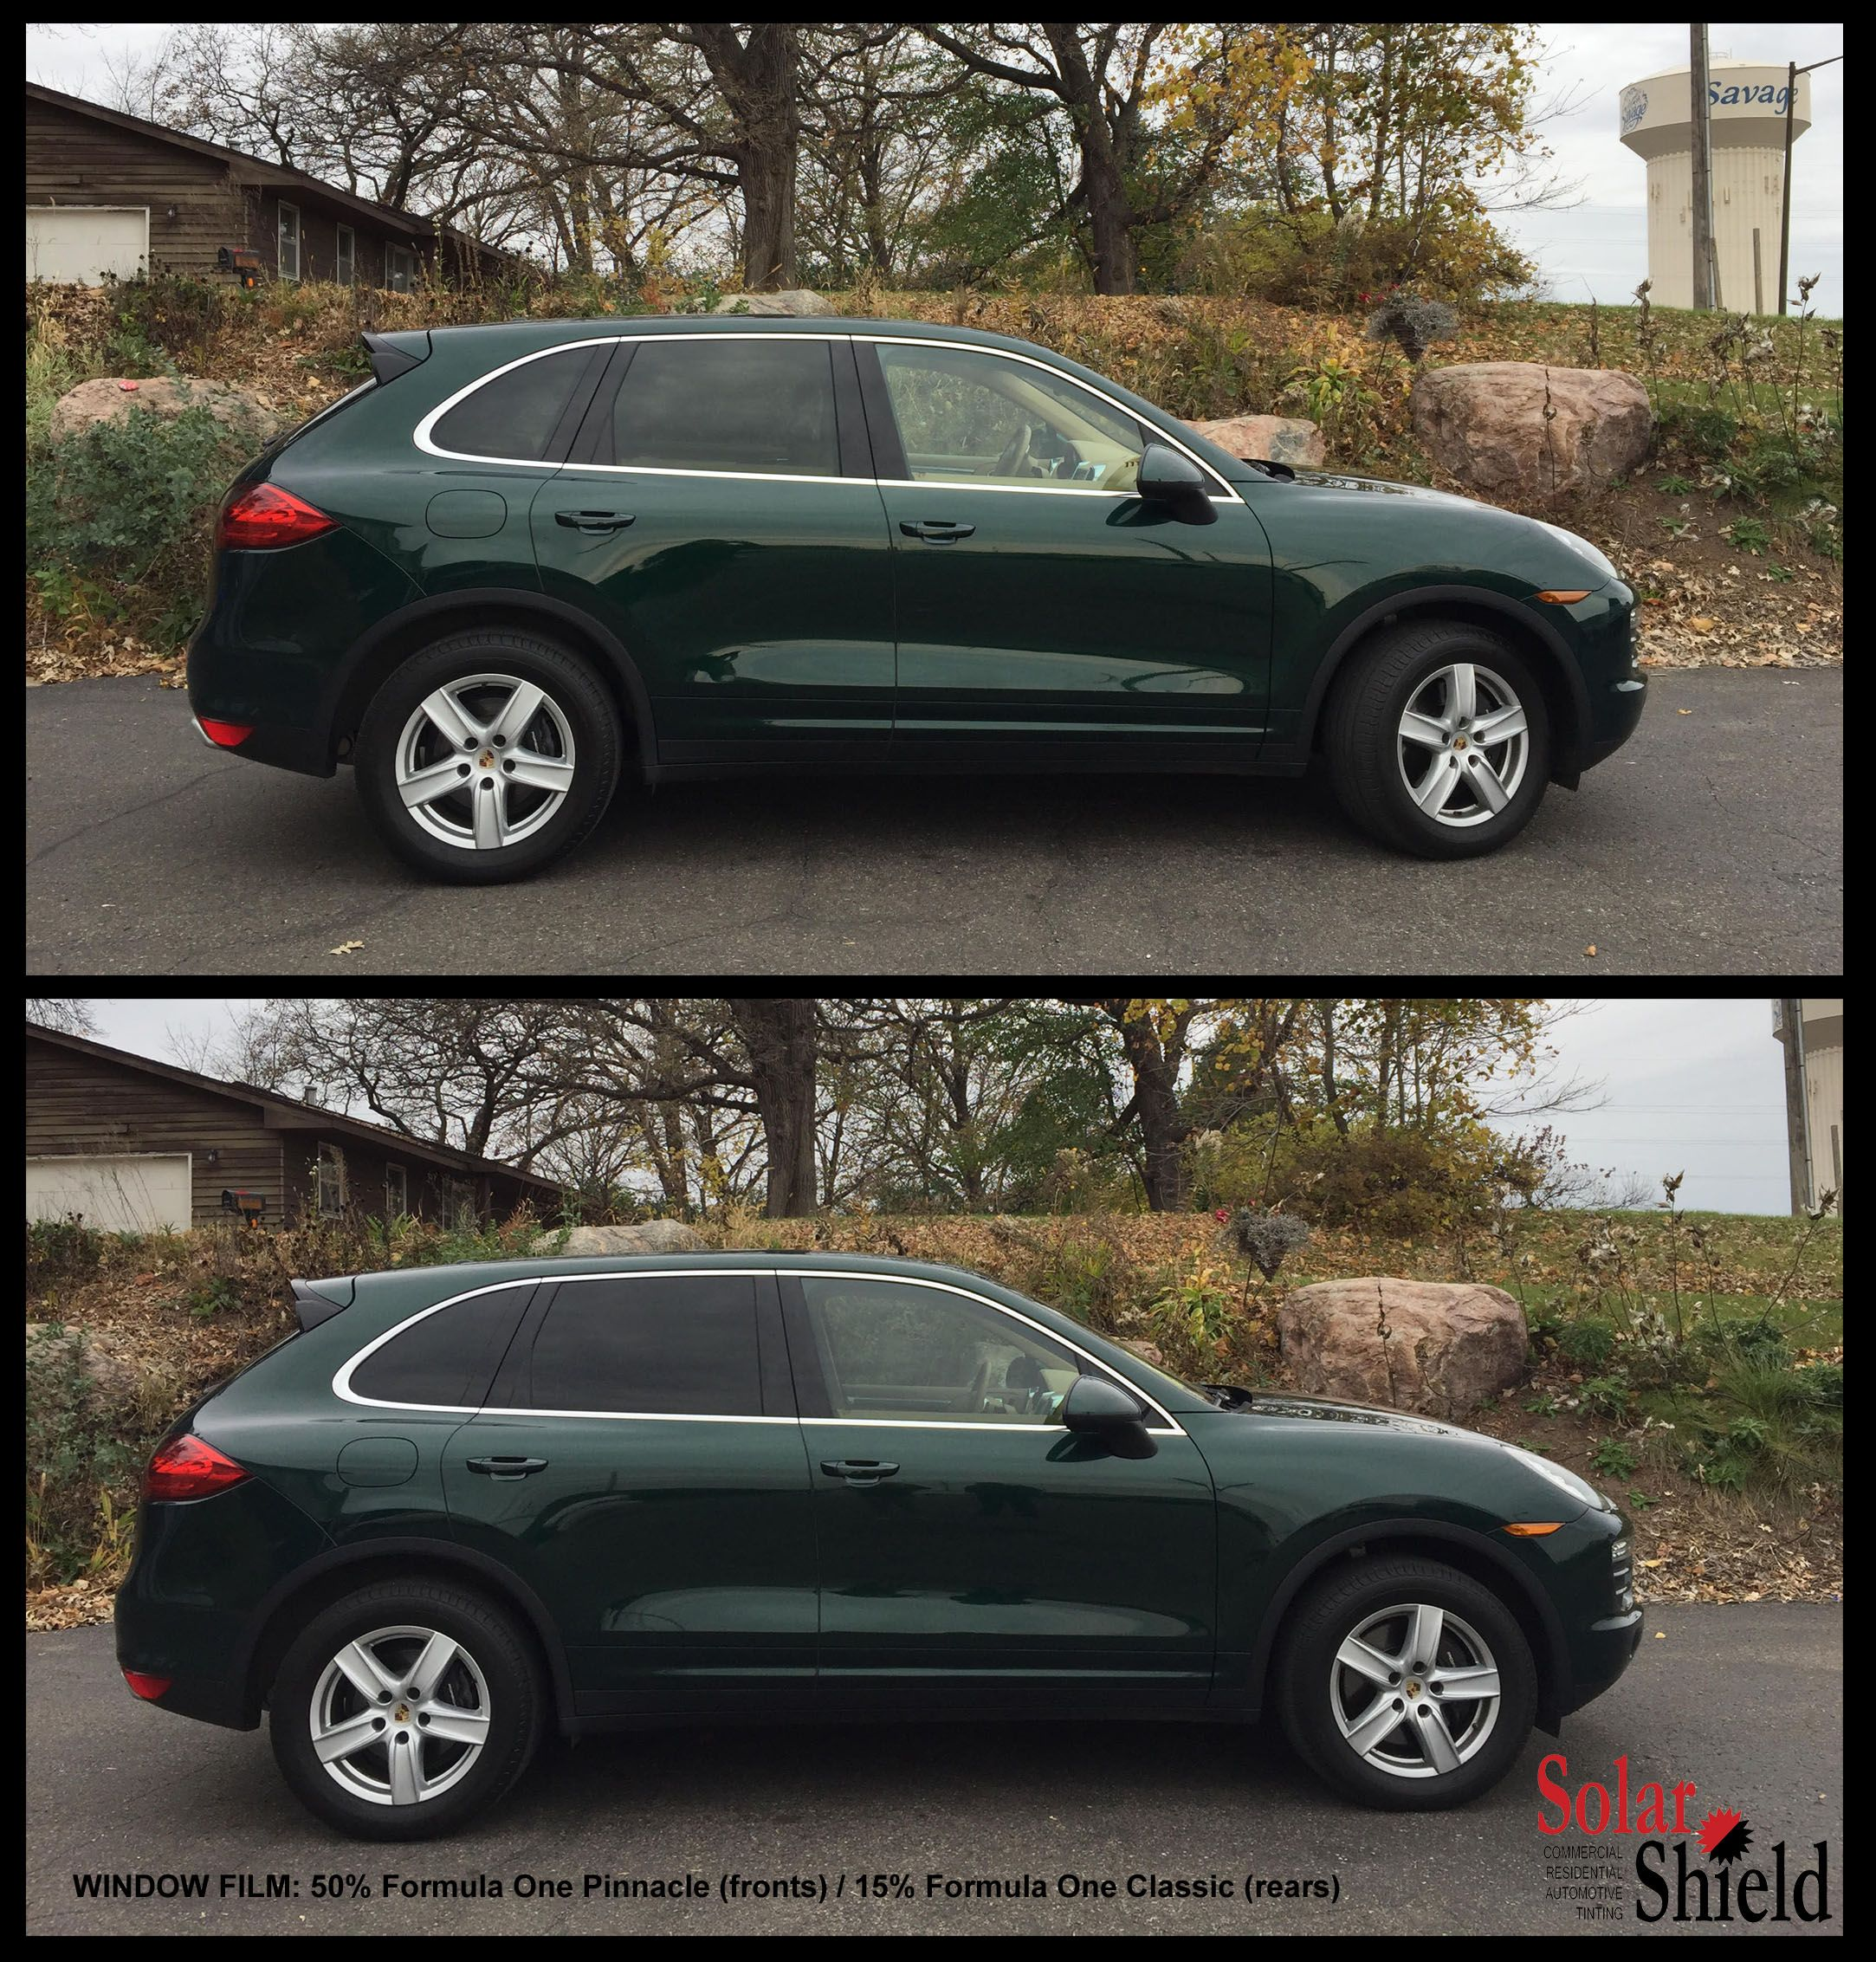 Our Installers Have Done A Great Job On This Porsche Cayenne